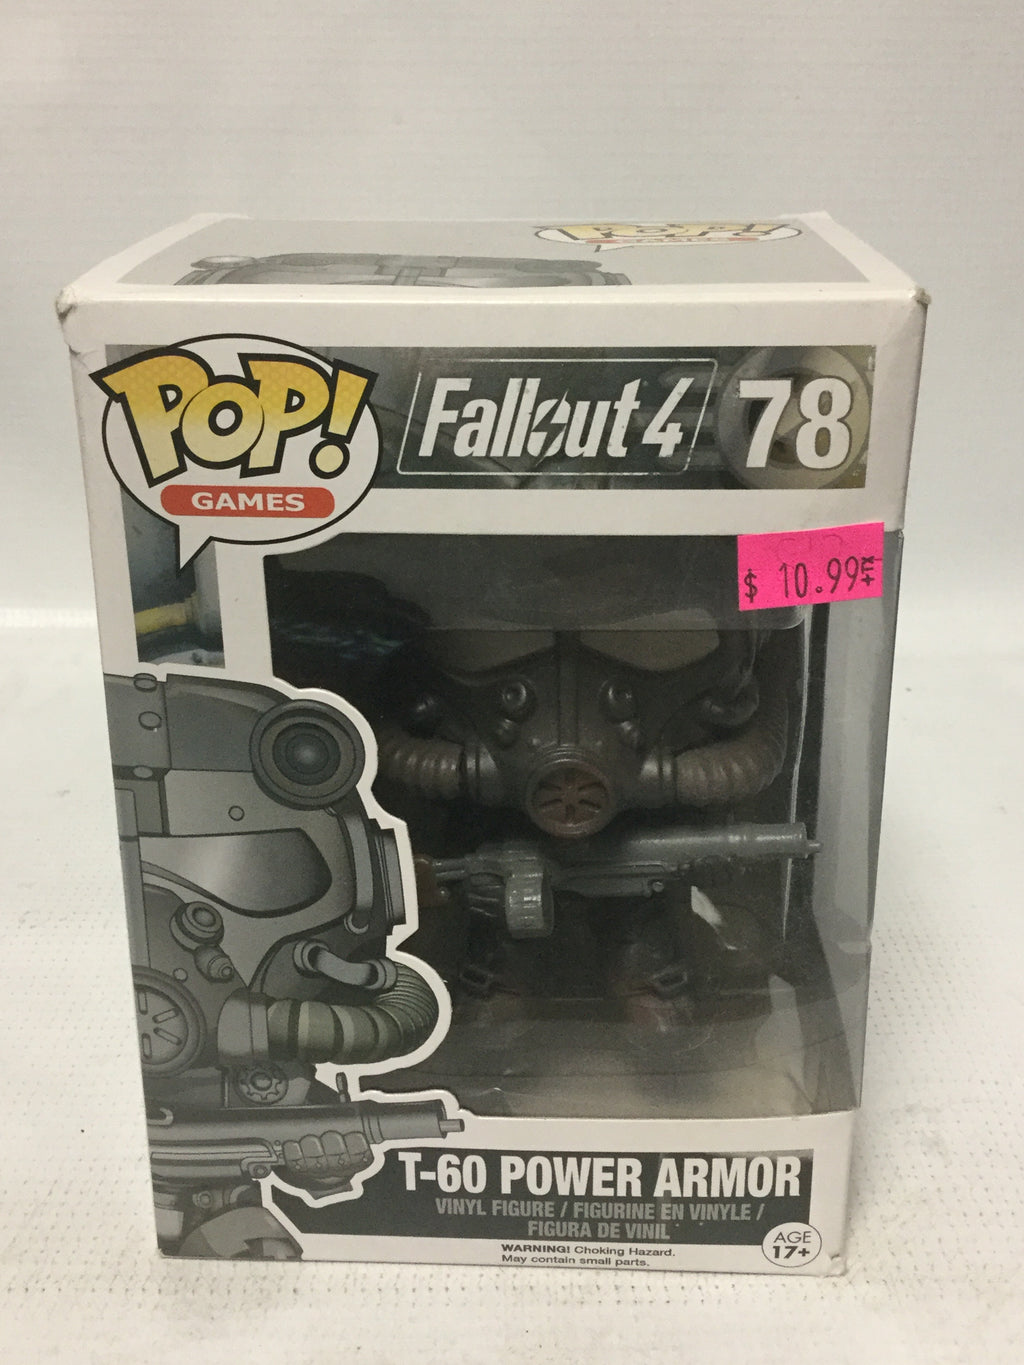 Funko POP Games! Fallout 4 78 T-60 Power Armor